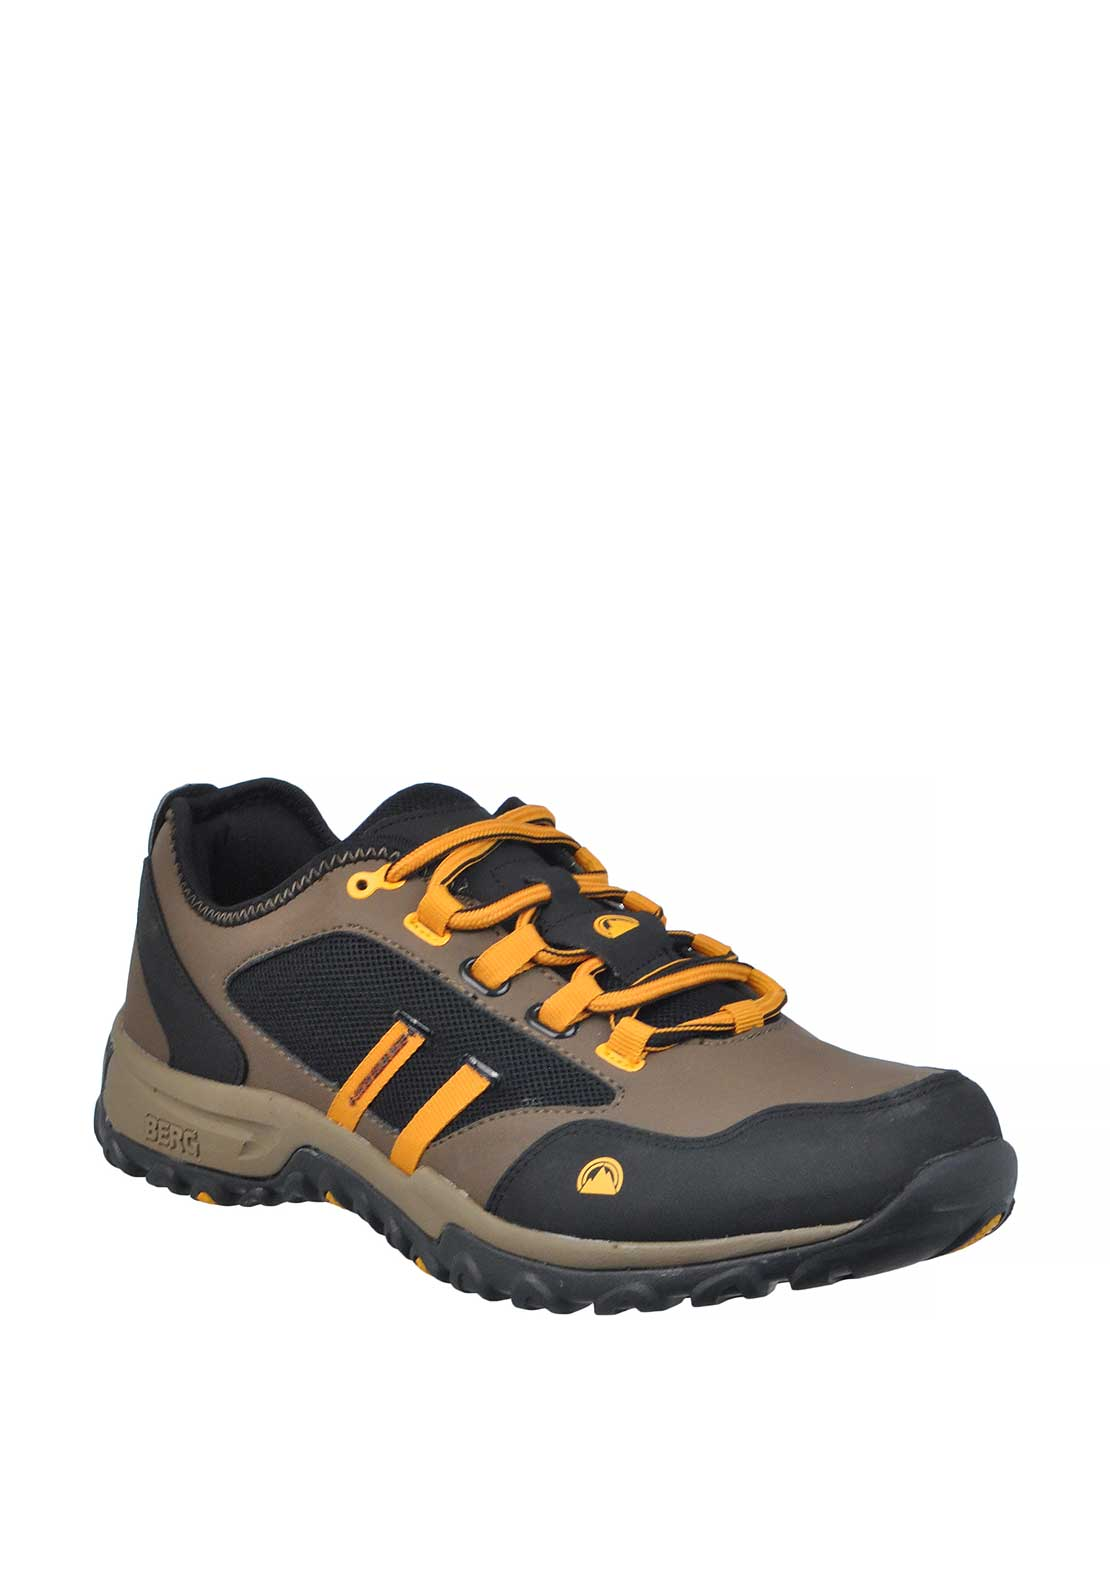 Berg Outdoor Mens Numbat Lace Up Trainer, Brown and Black